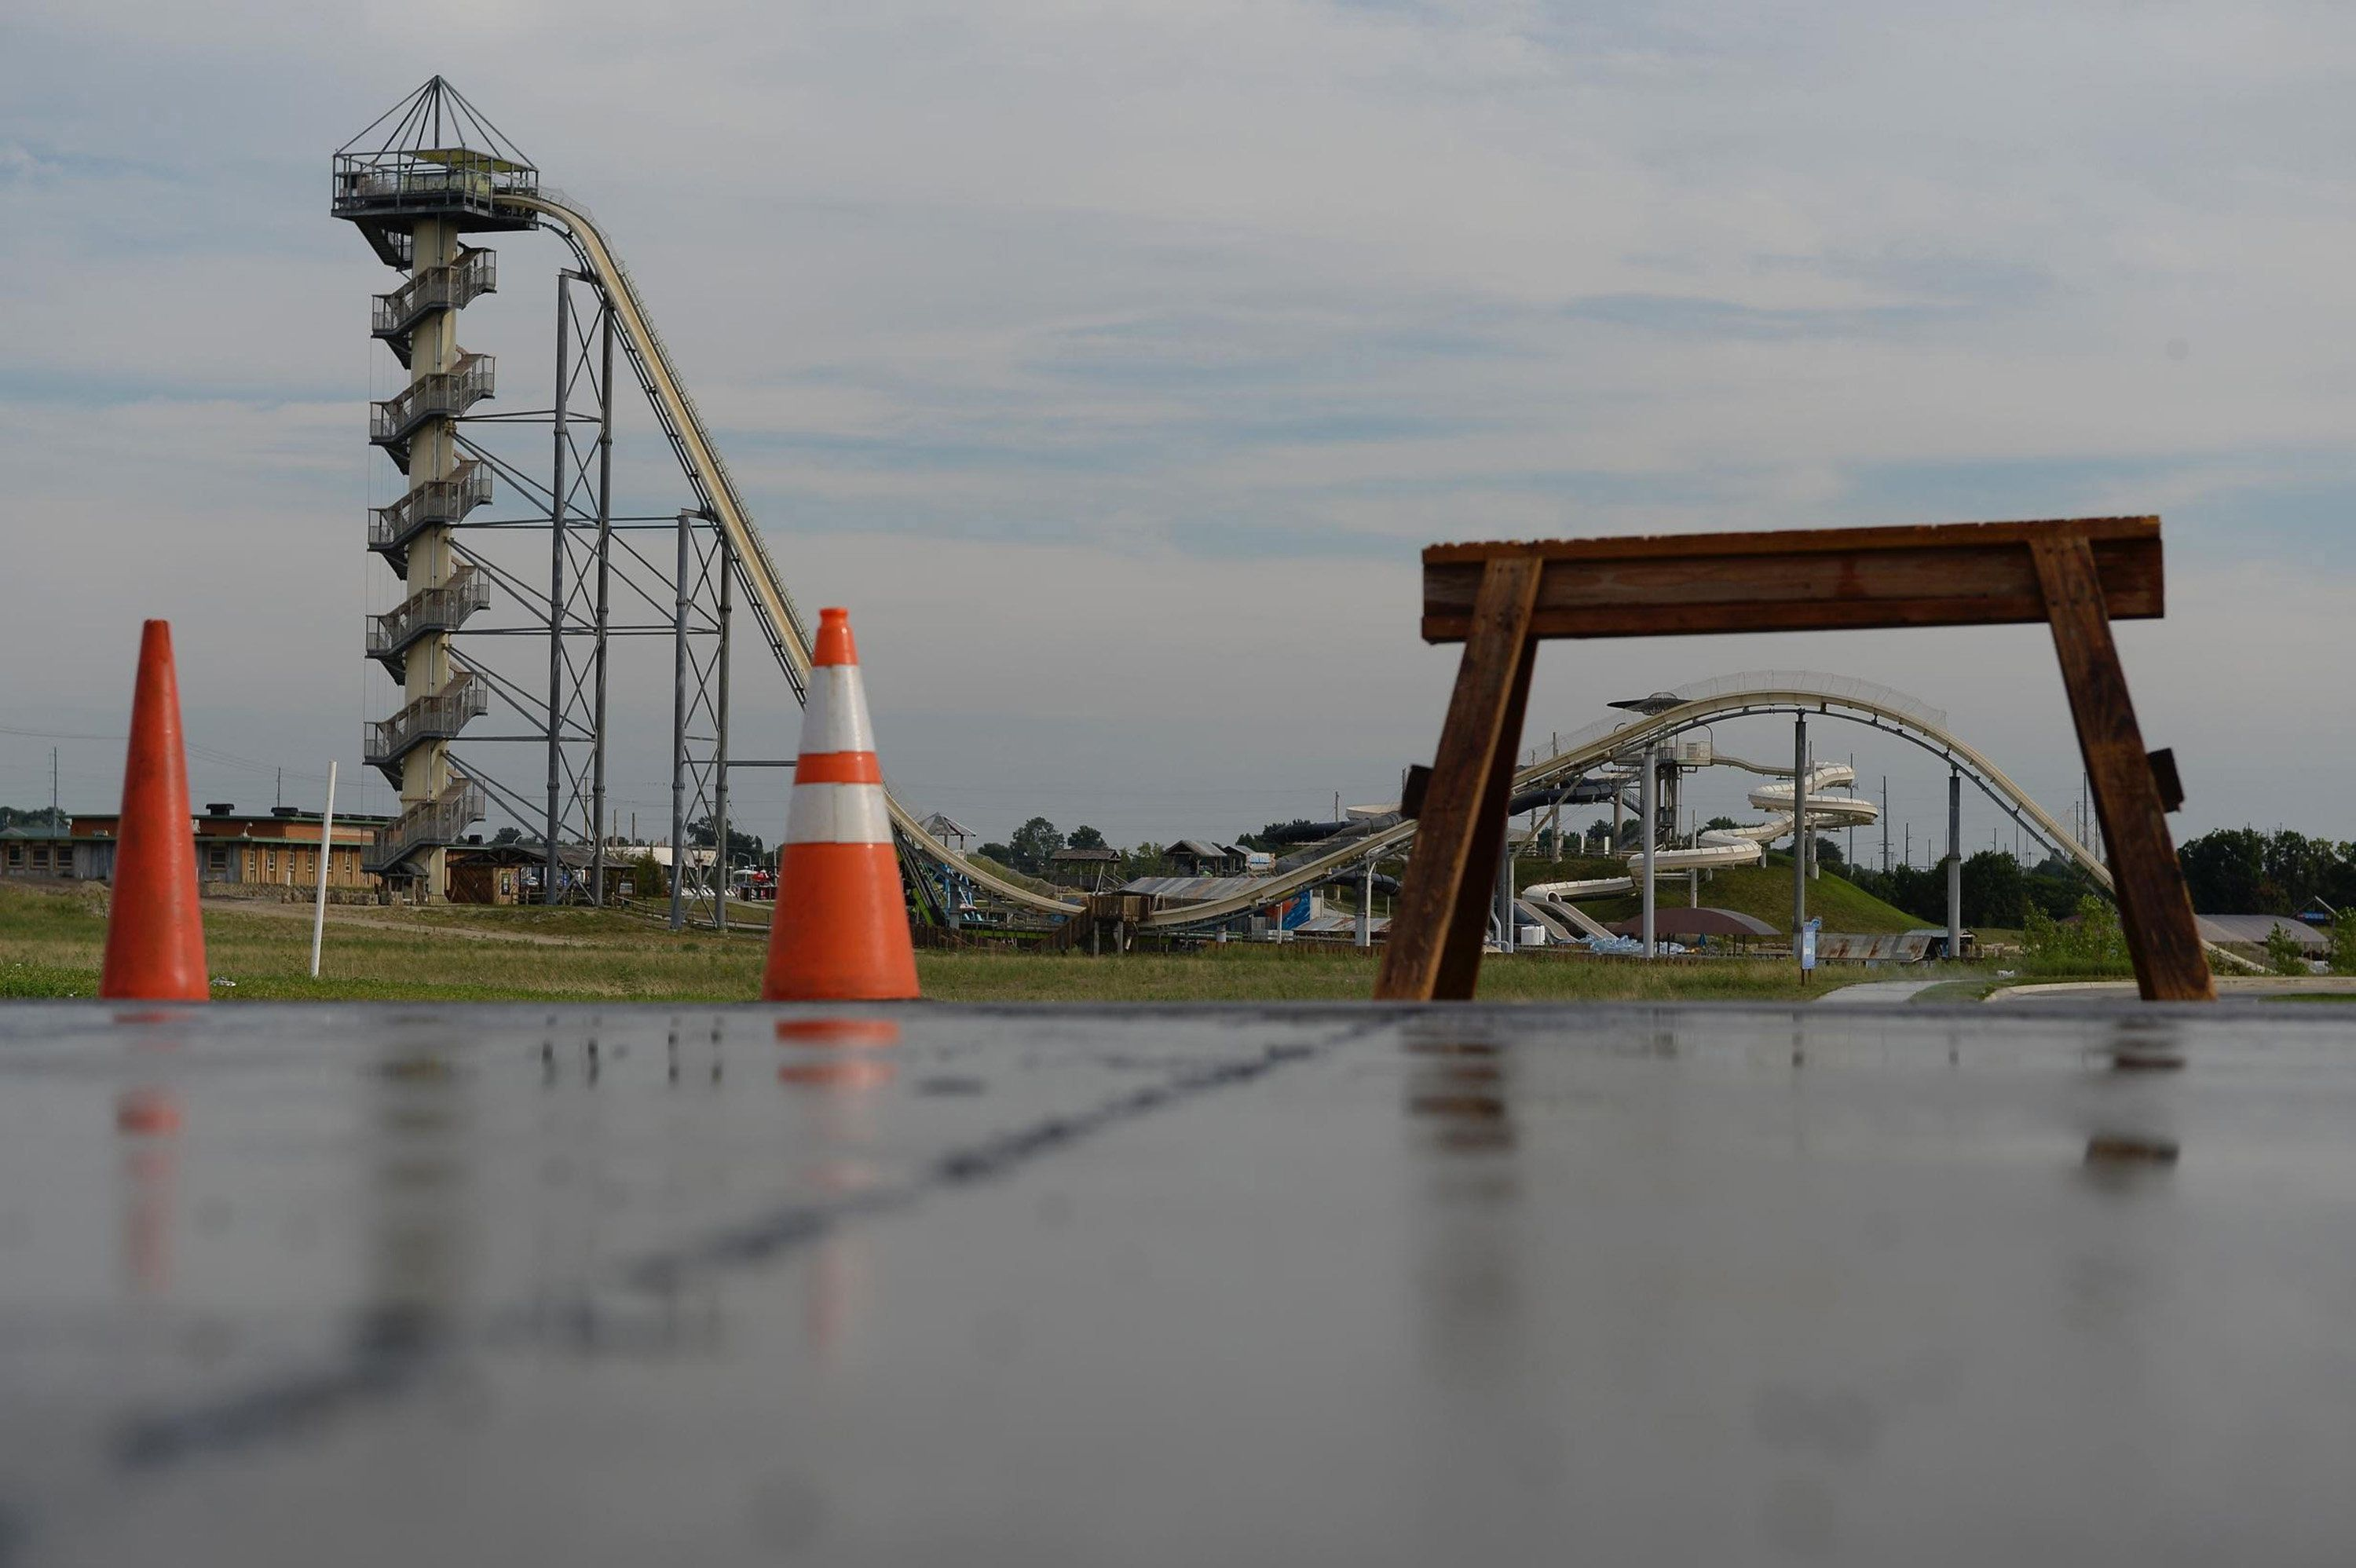 Caleb Schwab died on the Verruckt water slide at the Schlitterbahn water park in Kansas City, Kan., in August 2016. A Schlitterbahn executive has been arrested and charged with involuntary manslaughter. (Keith Myers/Kansas City Star/TNS via Getty Images)